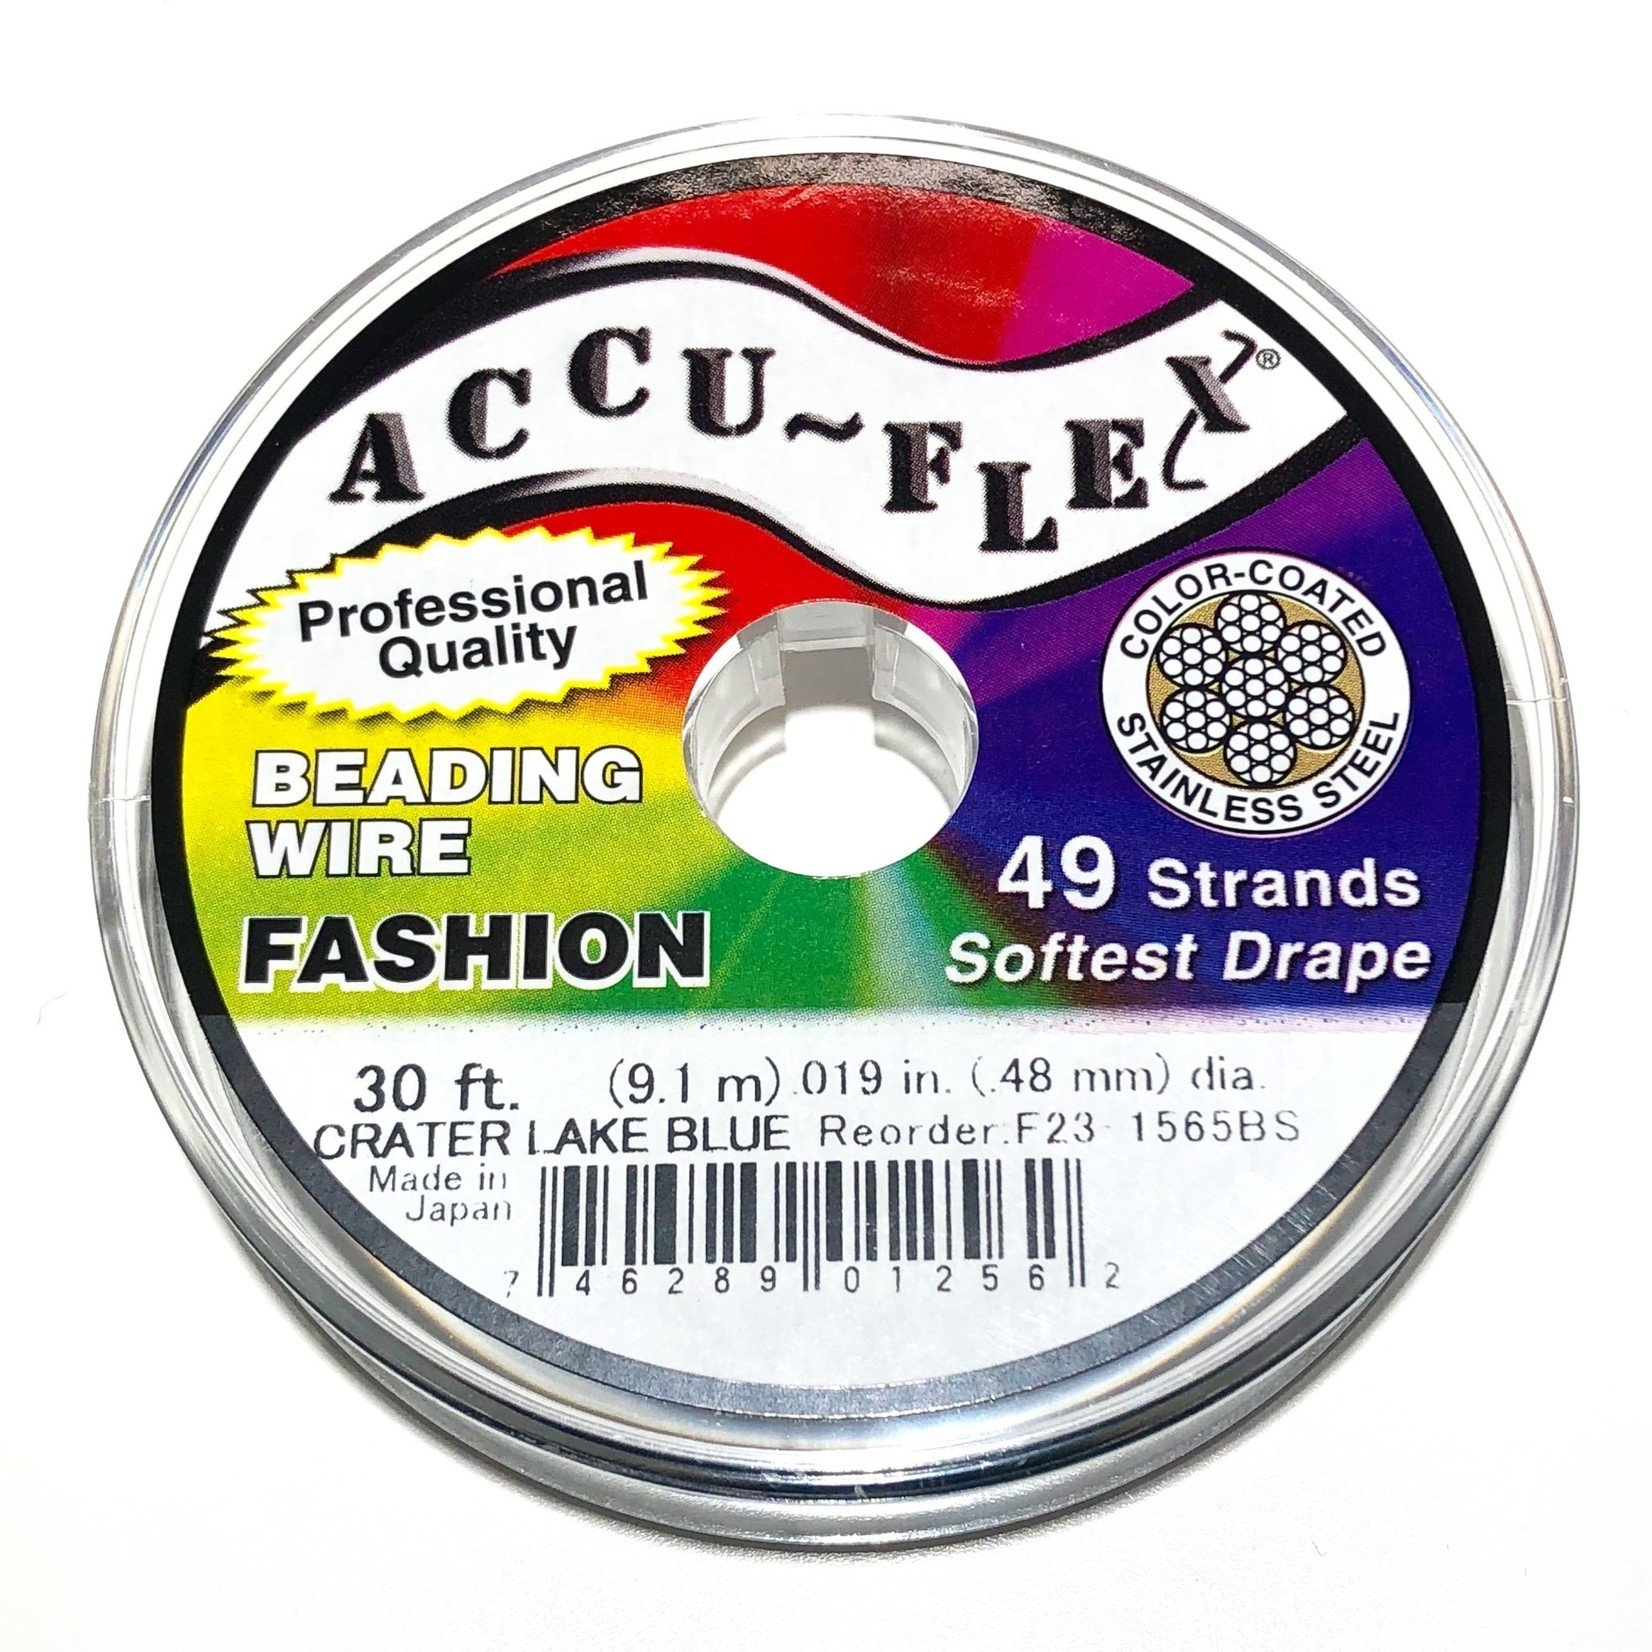 ACCU FLEX Bead Wire 49 Str .019in, 30 Ft Crater Lake Blue